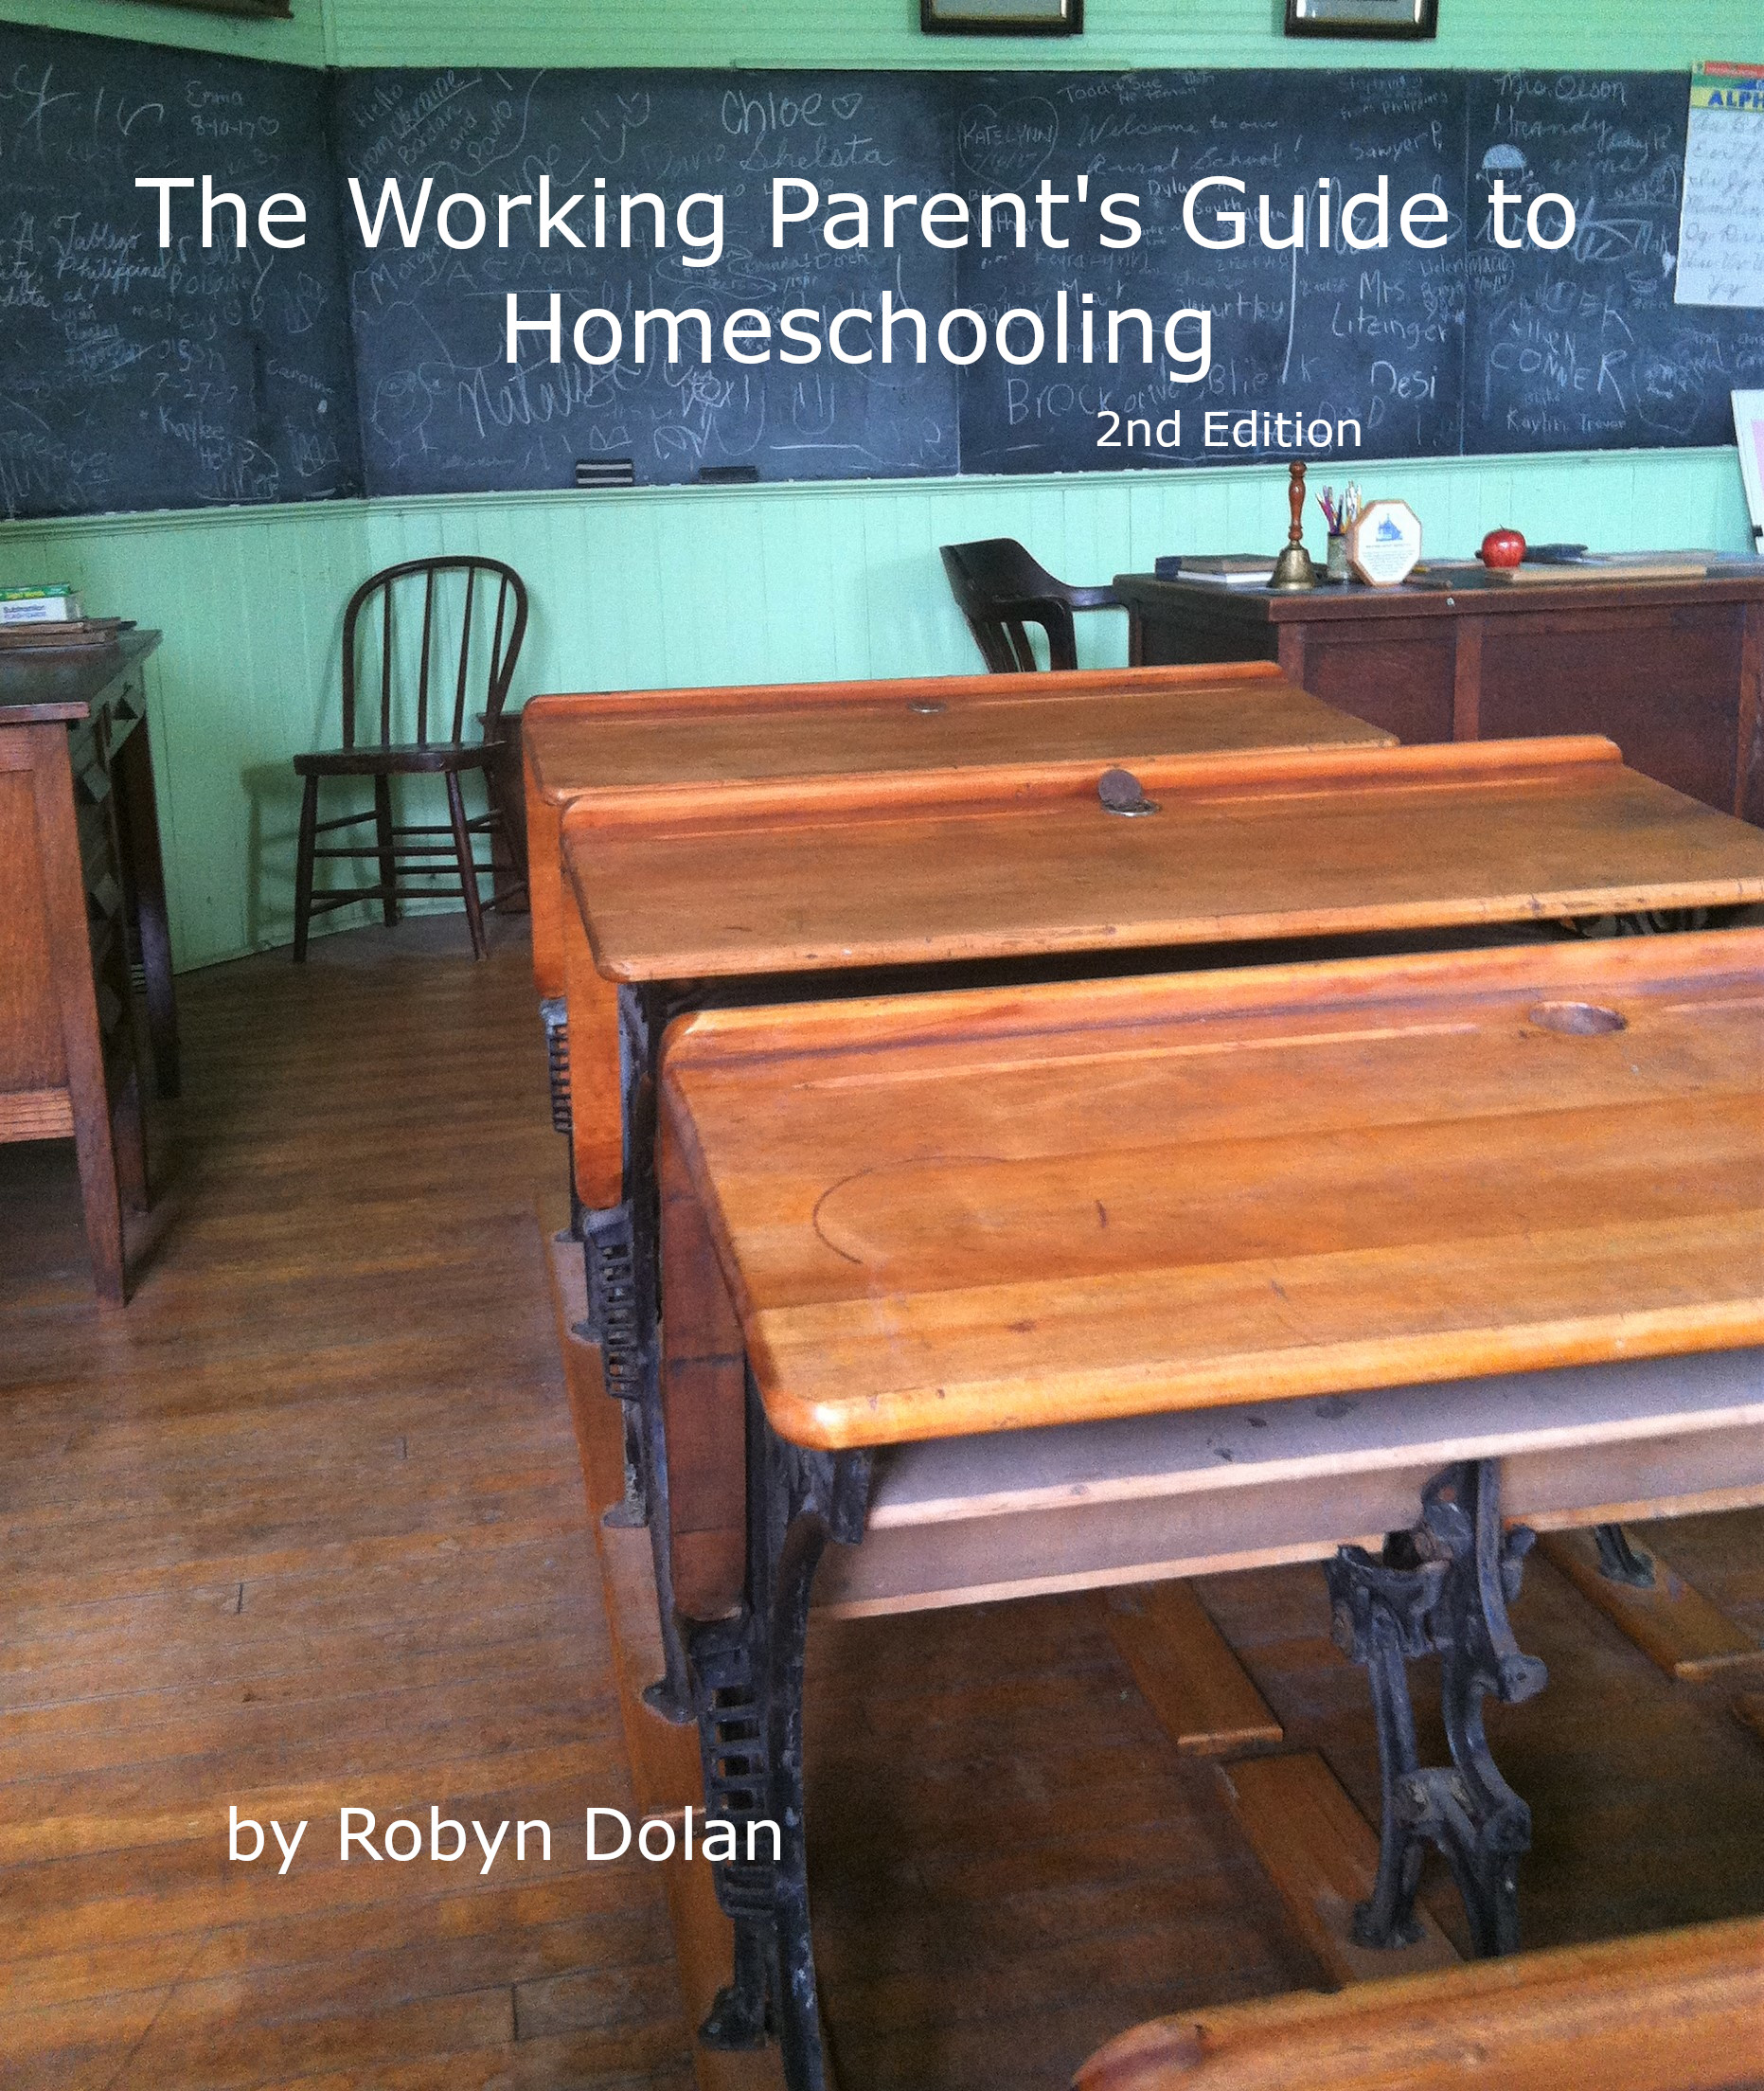 working parent's guide to homeschooling, 2nd edition